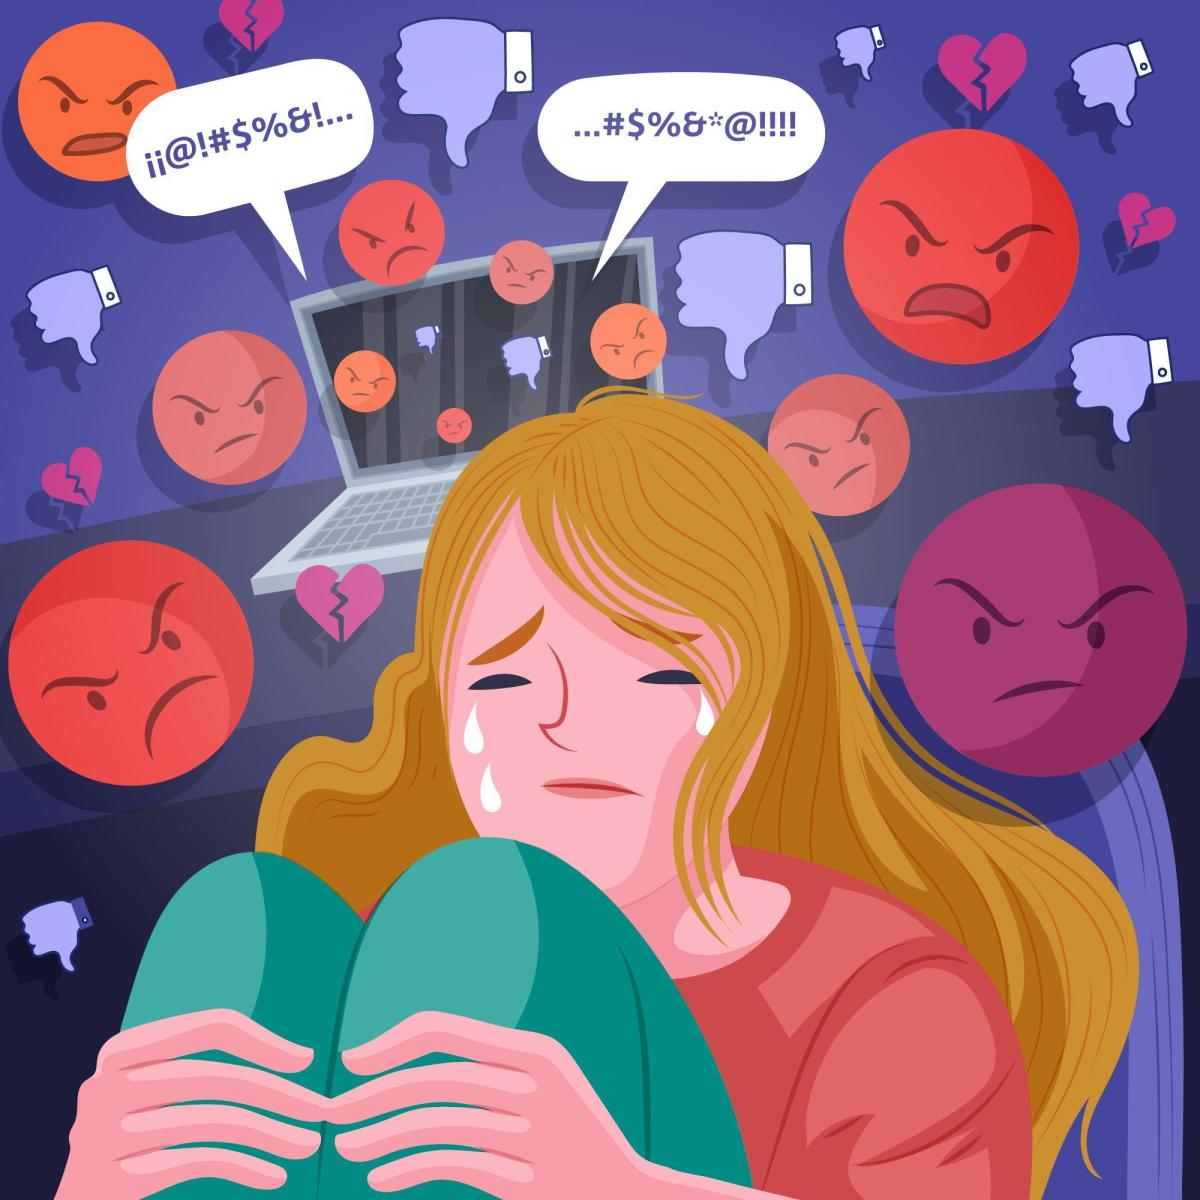 What Should Parents Do If Their Child Is Being Cyberbullied